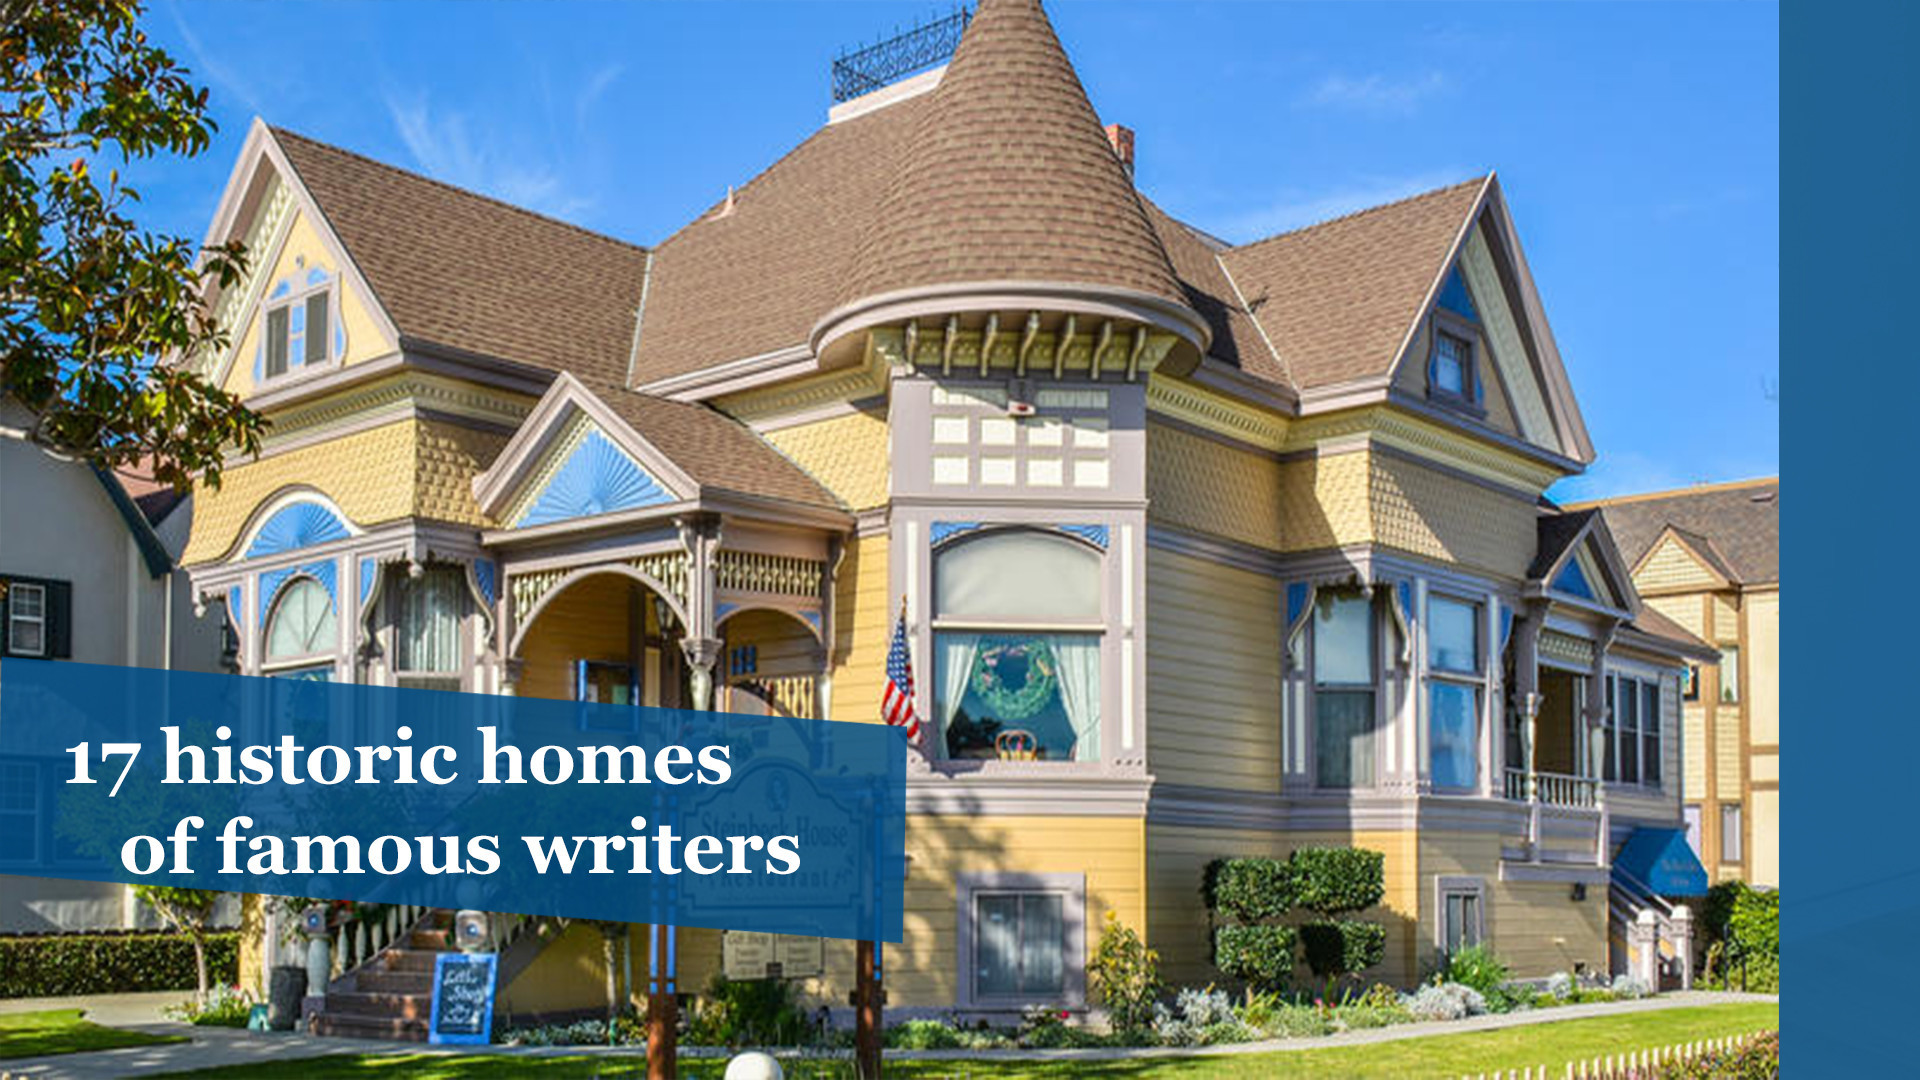 17 historic homes of famous writers